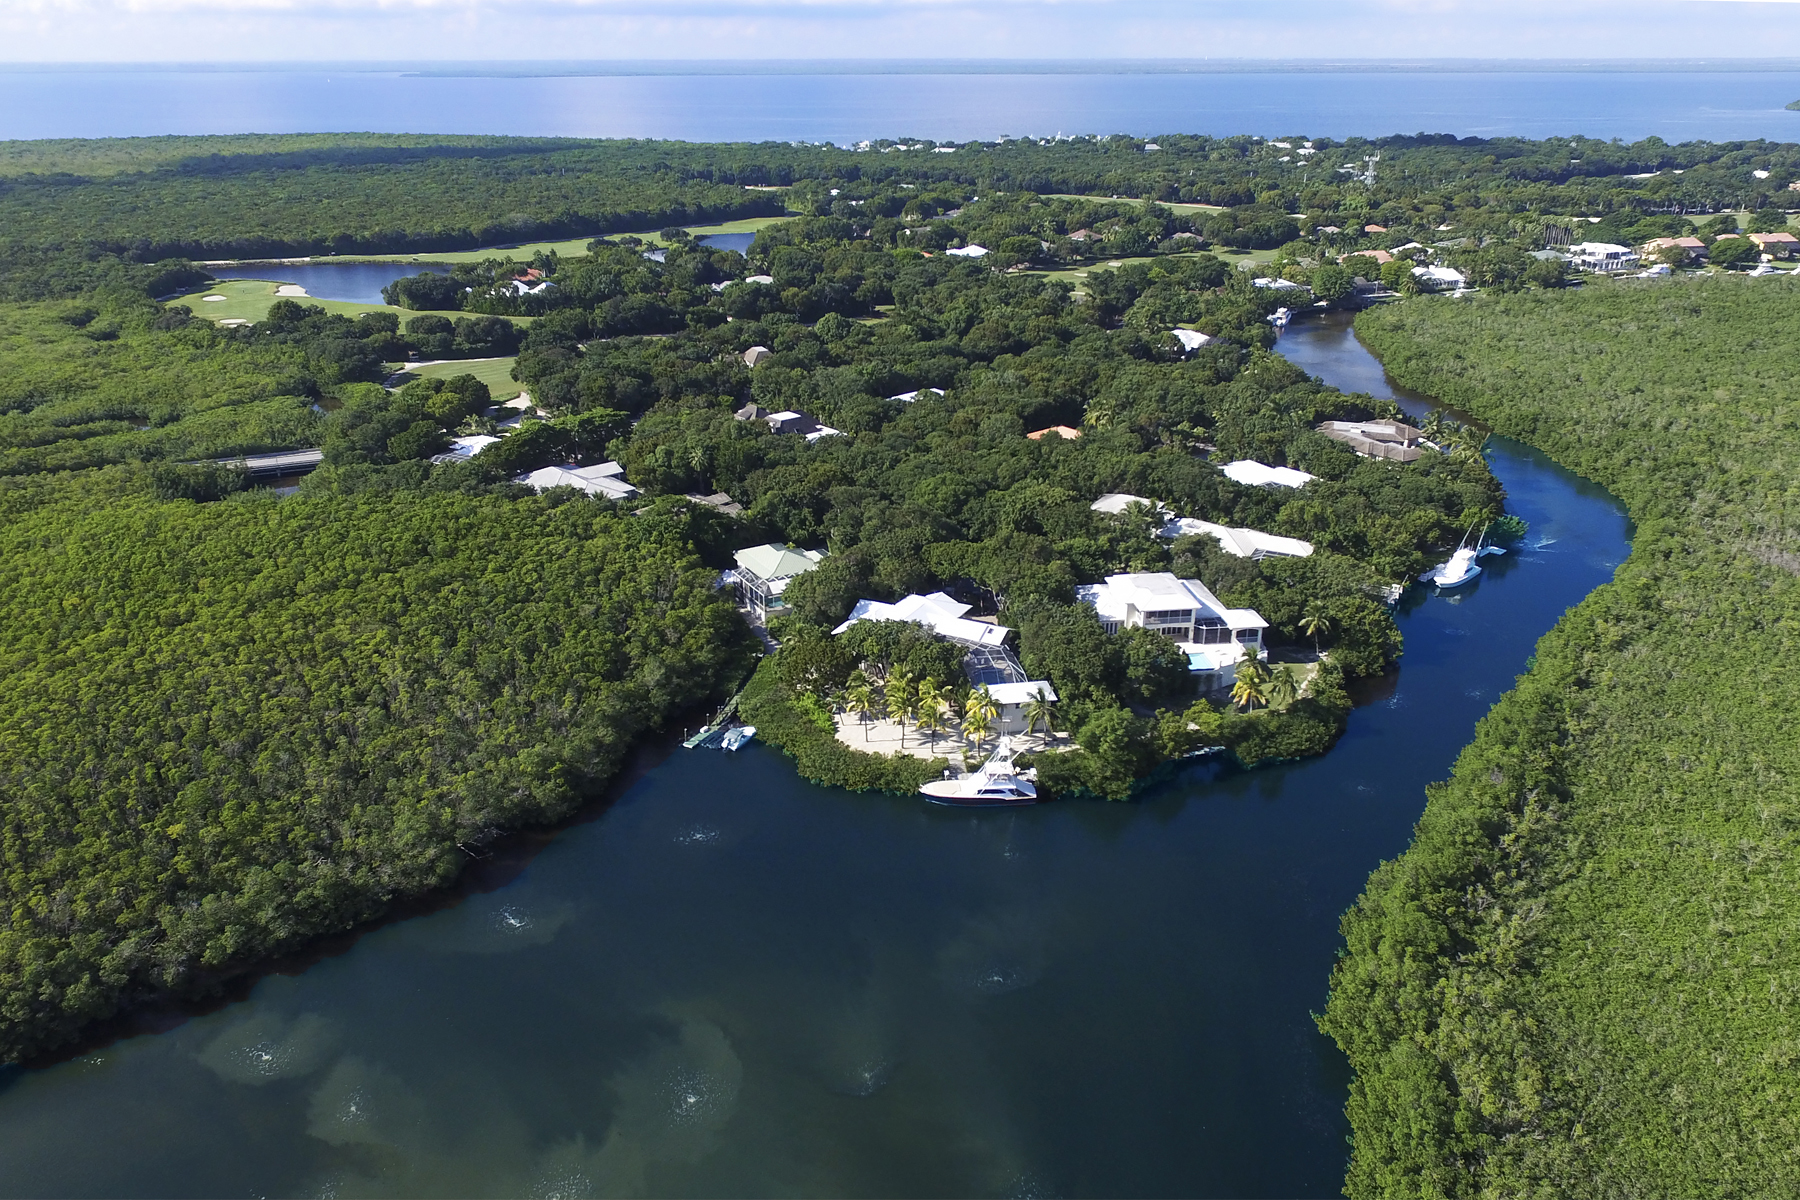 Casa Unifamiliar por un Venta en Waterfront Home at Ocean Reef Offers Wide Canalfront Views 15 North Bridge Lane Key Largo, Florida, 33037 Estados Unidos